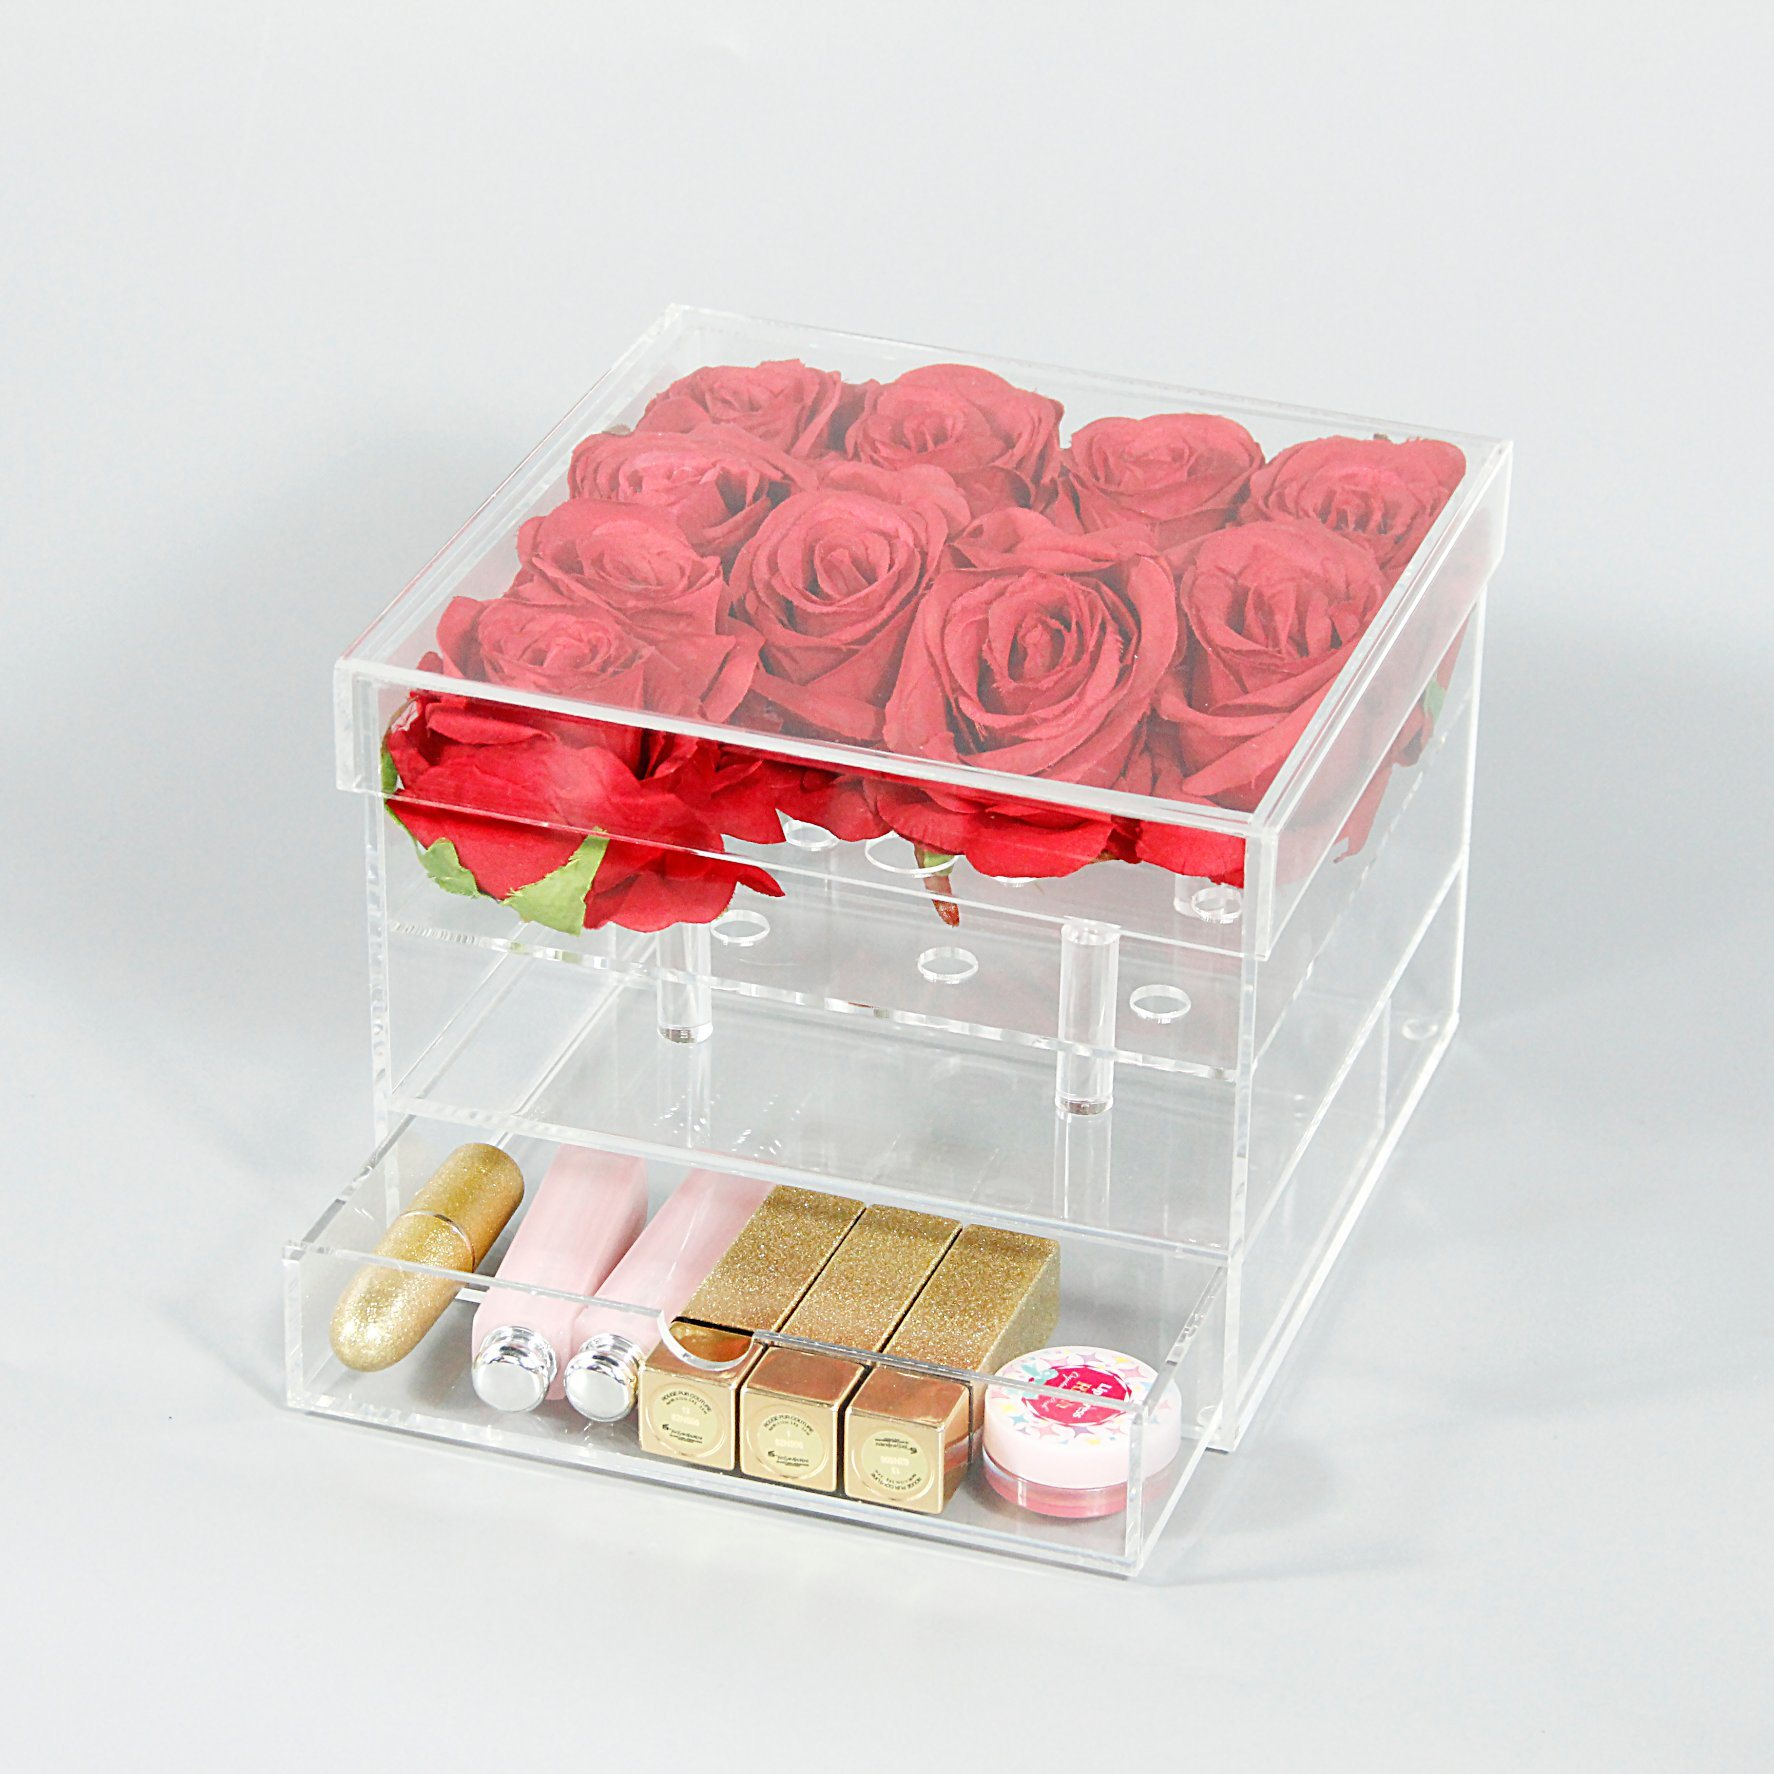 China Transparent Acrylic Wedding Rose Flower Box/Case with Drawer ...